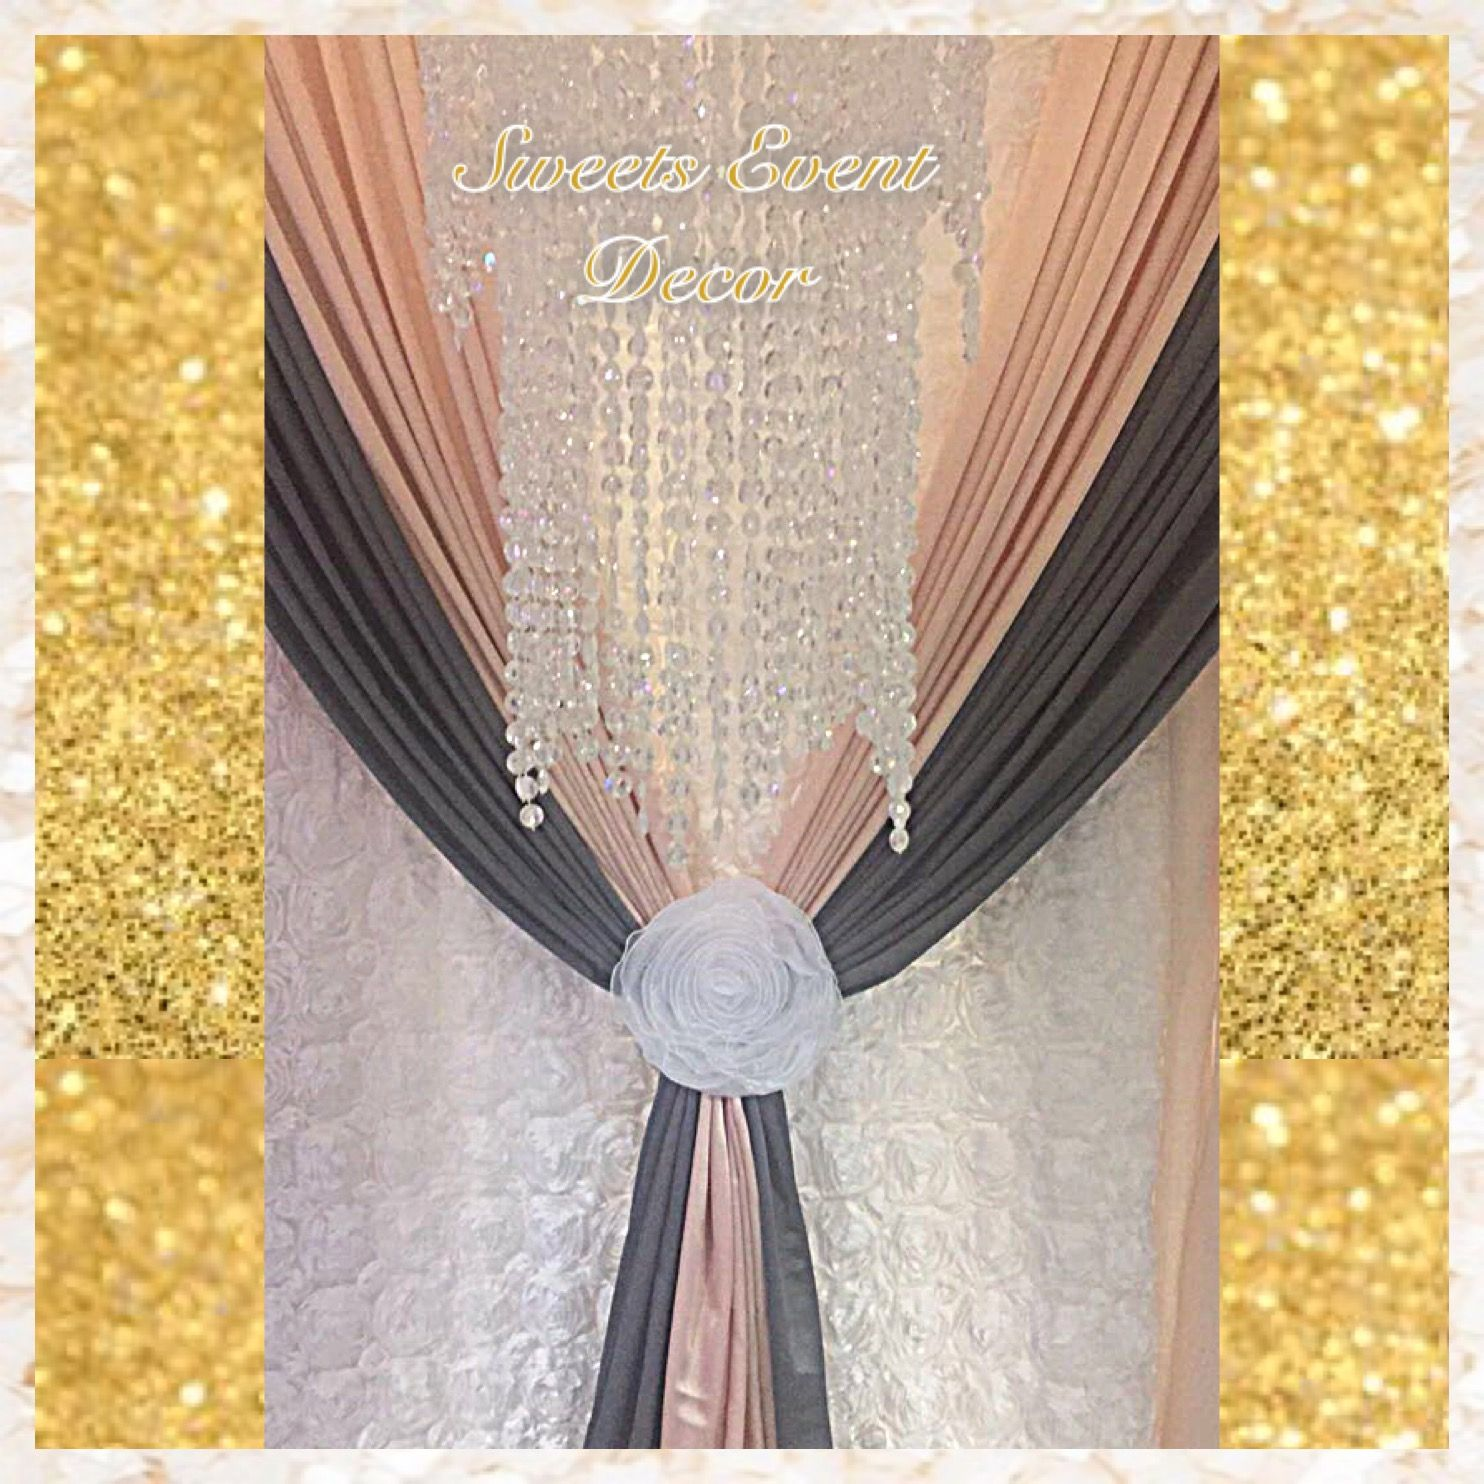 wedding canopy decor by sweets event decor tent draping fabric draping fabric